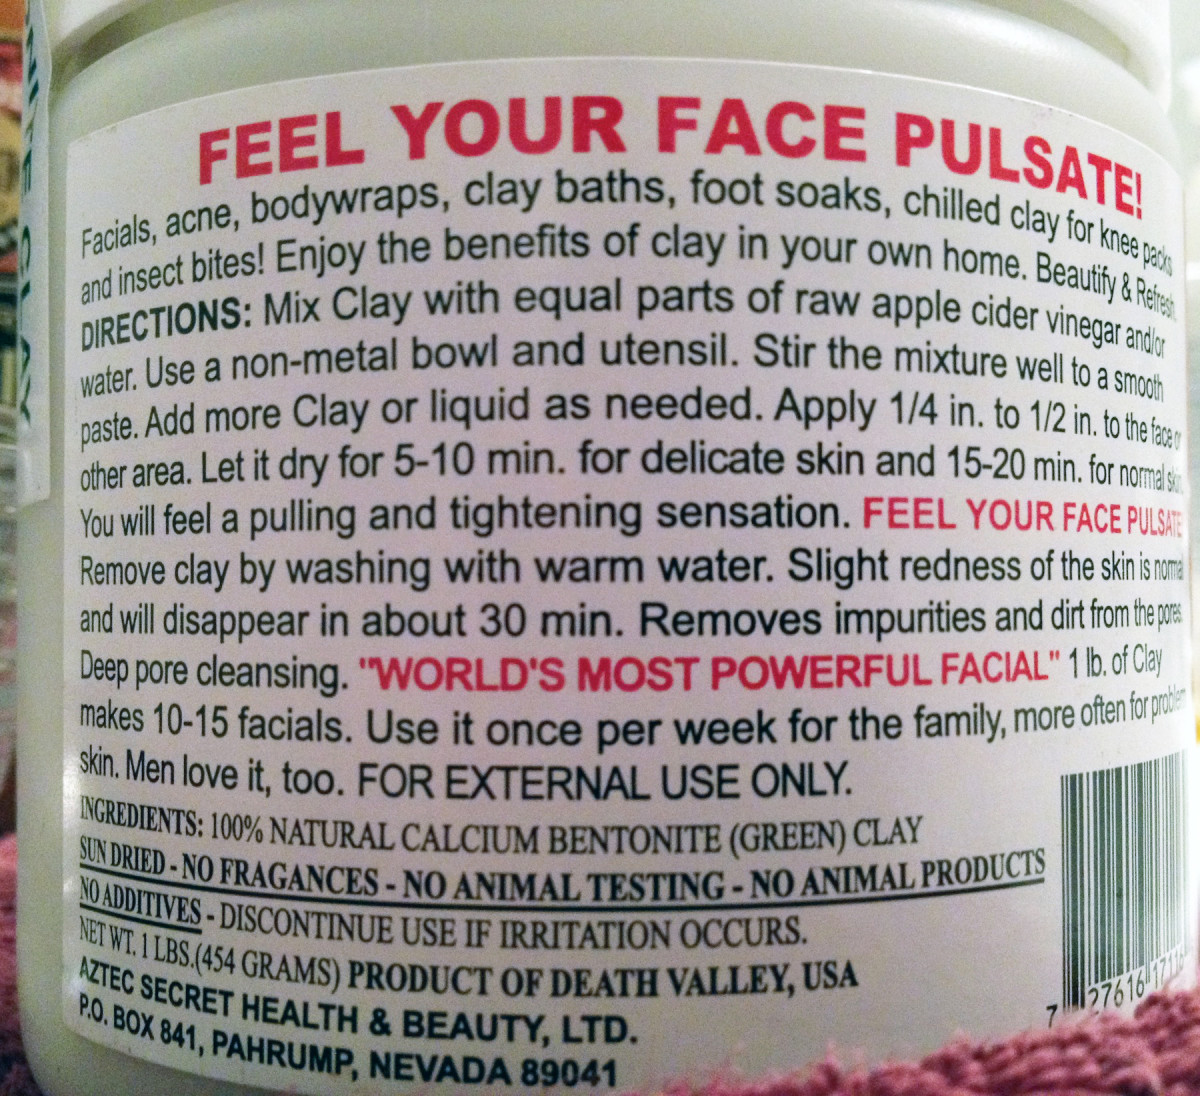 Clay mask ingredients: FEEL YOUR FACE PULSATE